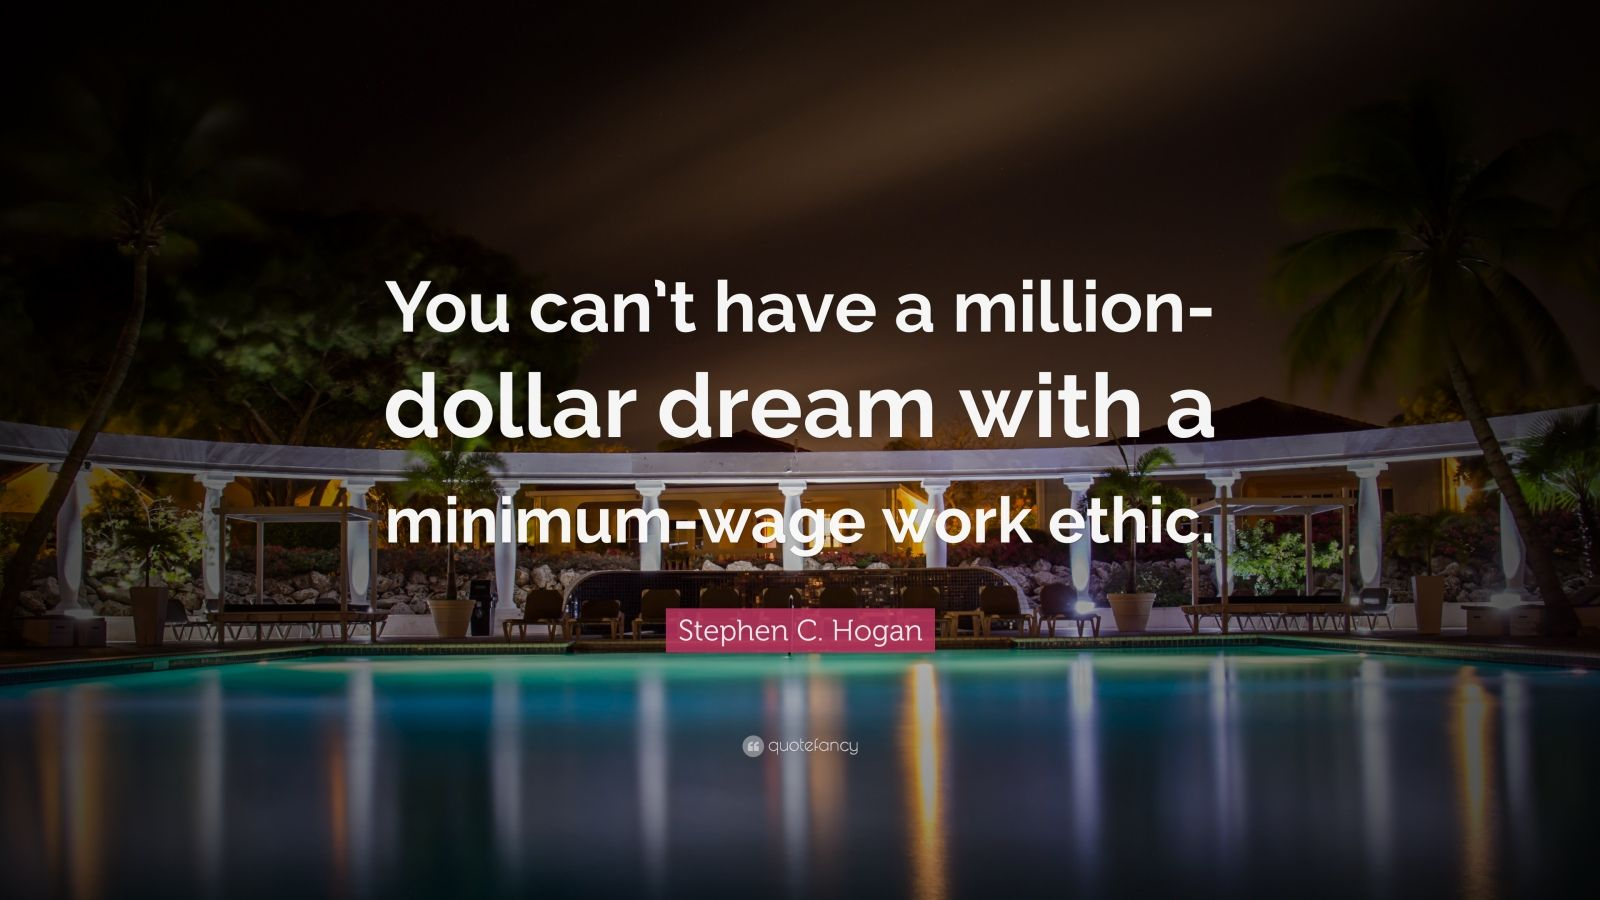 Steve Jobs Motivational Quotes Wallpaper Stephen C Hogan Quote You Can T Have A Million Dollar